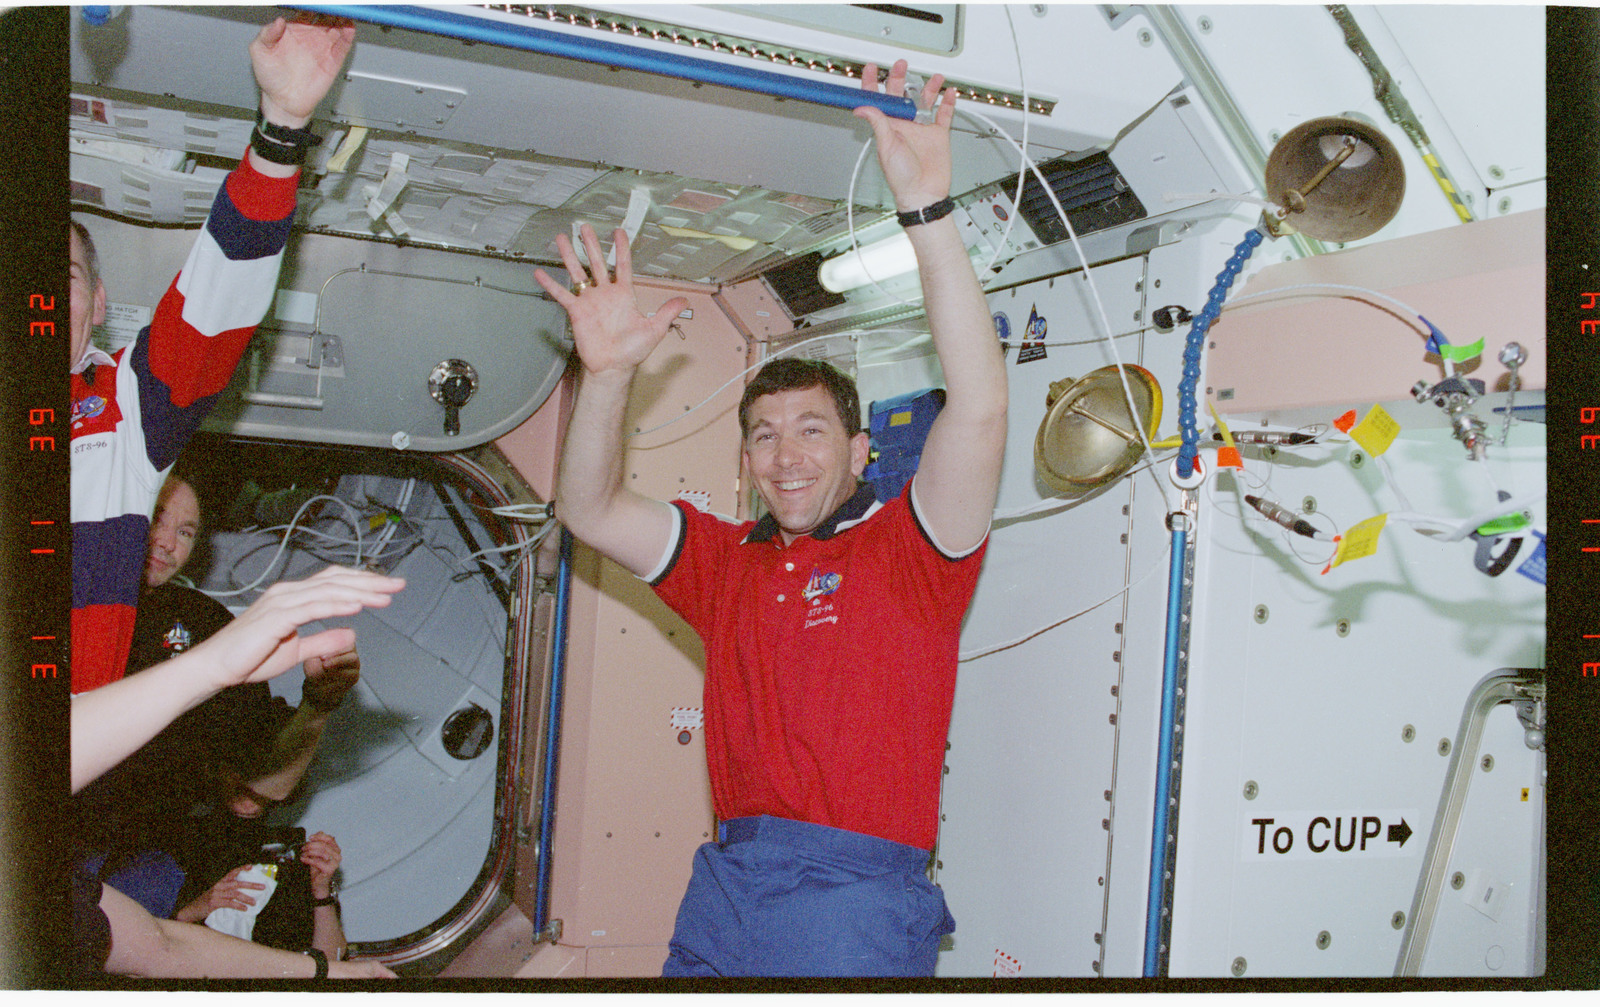 STS096-368-026 - STS-096 - View of the STS-96 crew in the Node 1/Unity module